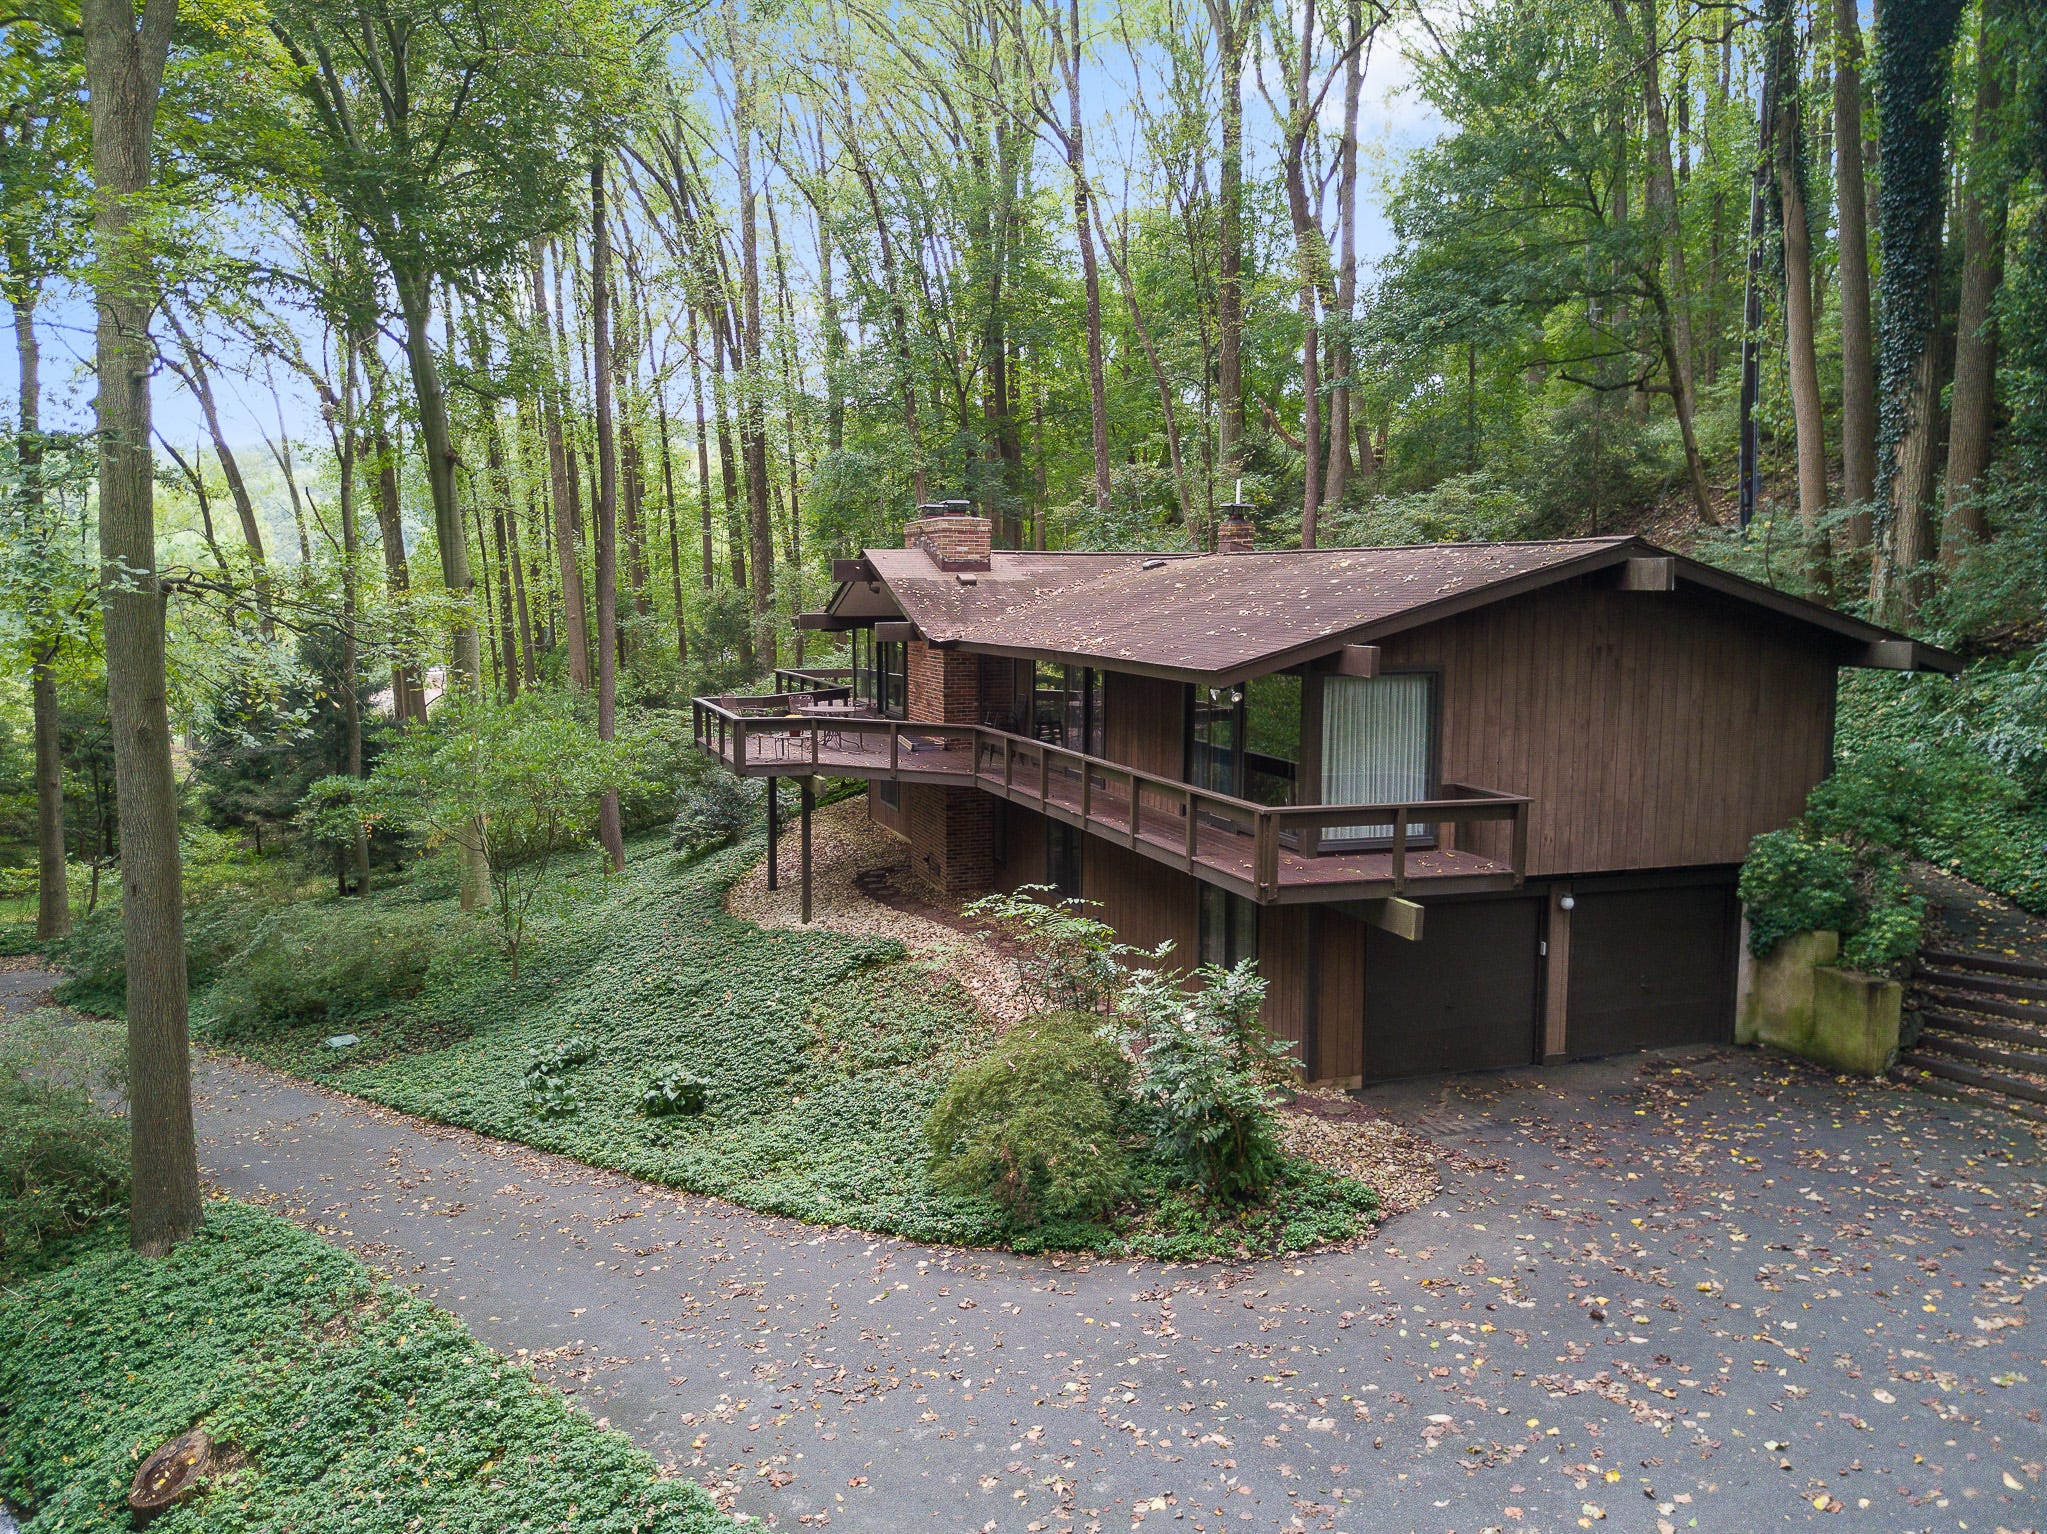 A deck wraps around the mid-century modern home at 110 Thissell in Greenville, which includes a two-car garage.